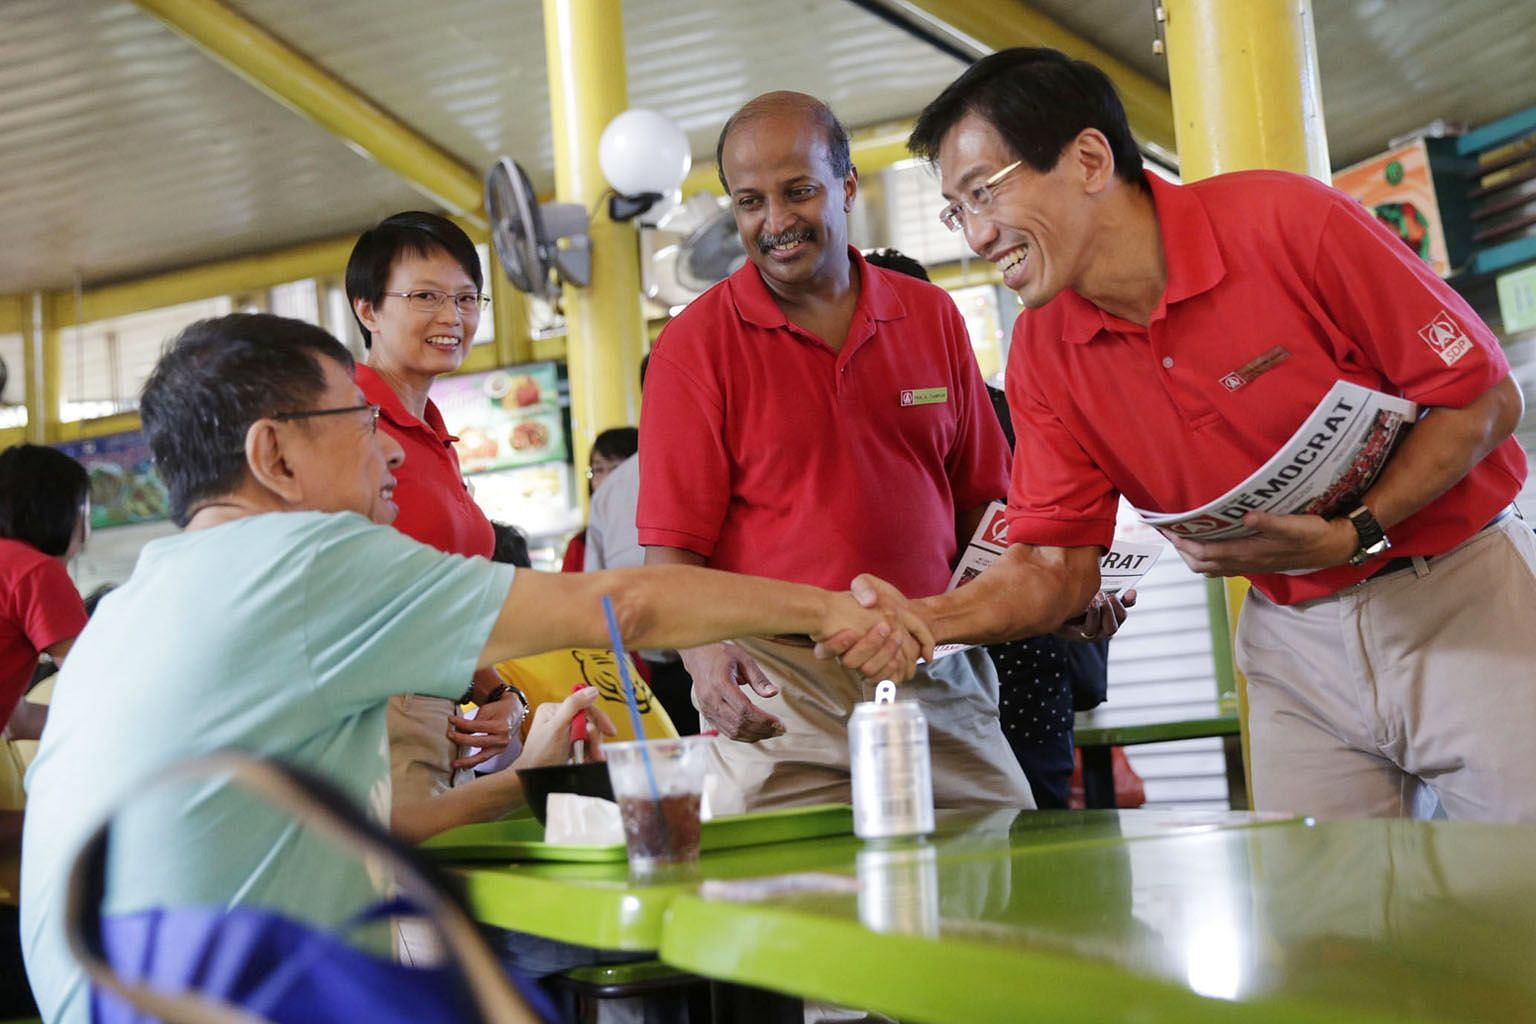 (From right) Dr Chee Soon Juan, Professor Paul Tambyah and Ms Chong Wai Fung of the Singapore Democratic Party campaigning at Adam Road Food Centre during the 2015 General Election. Prof Tambyah, the party's new chairman, said this month that the par